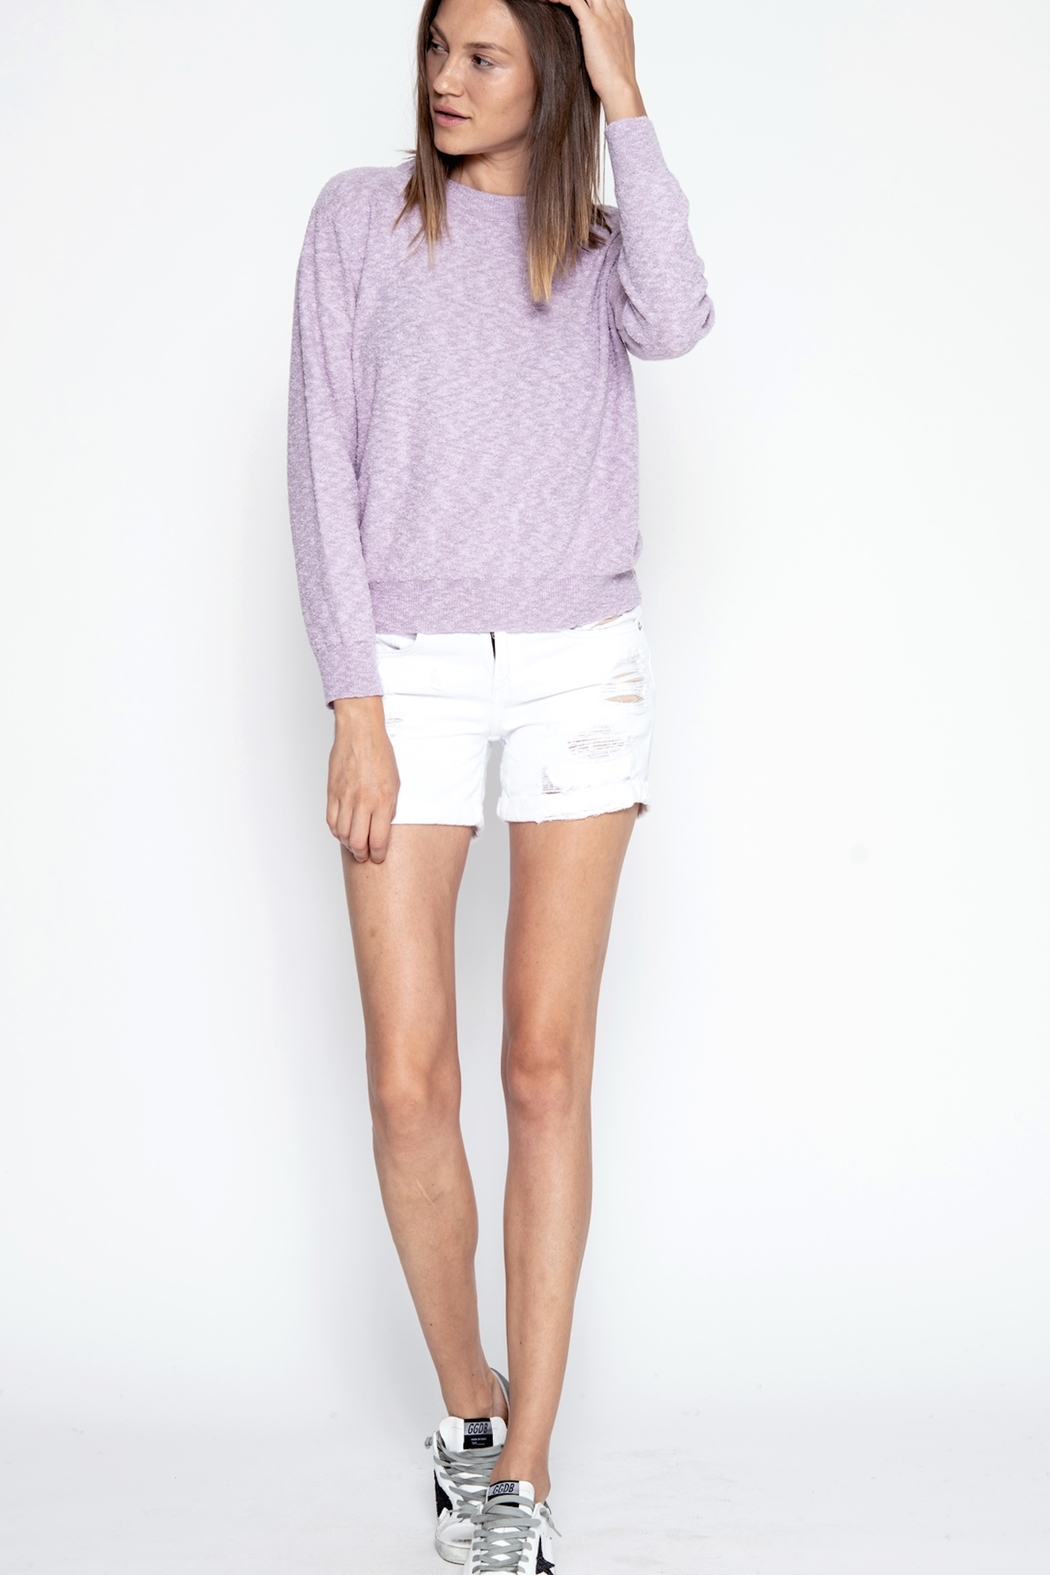 One Grey Day Iris Pullover Sweater - Main Image